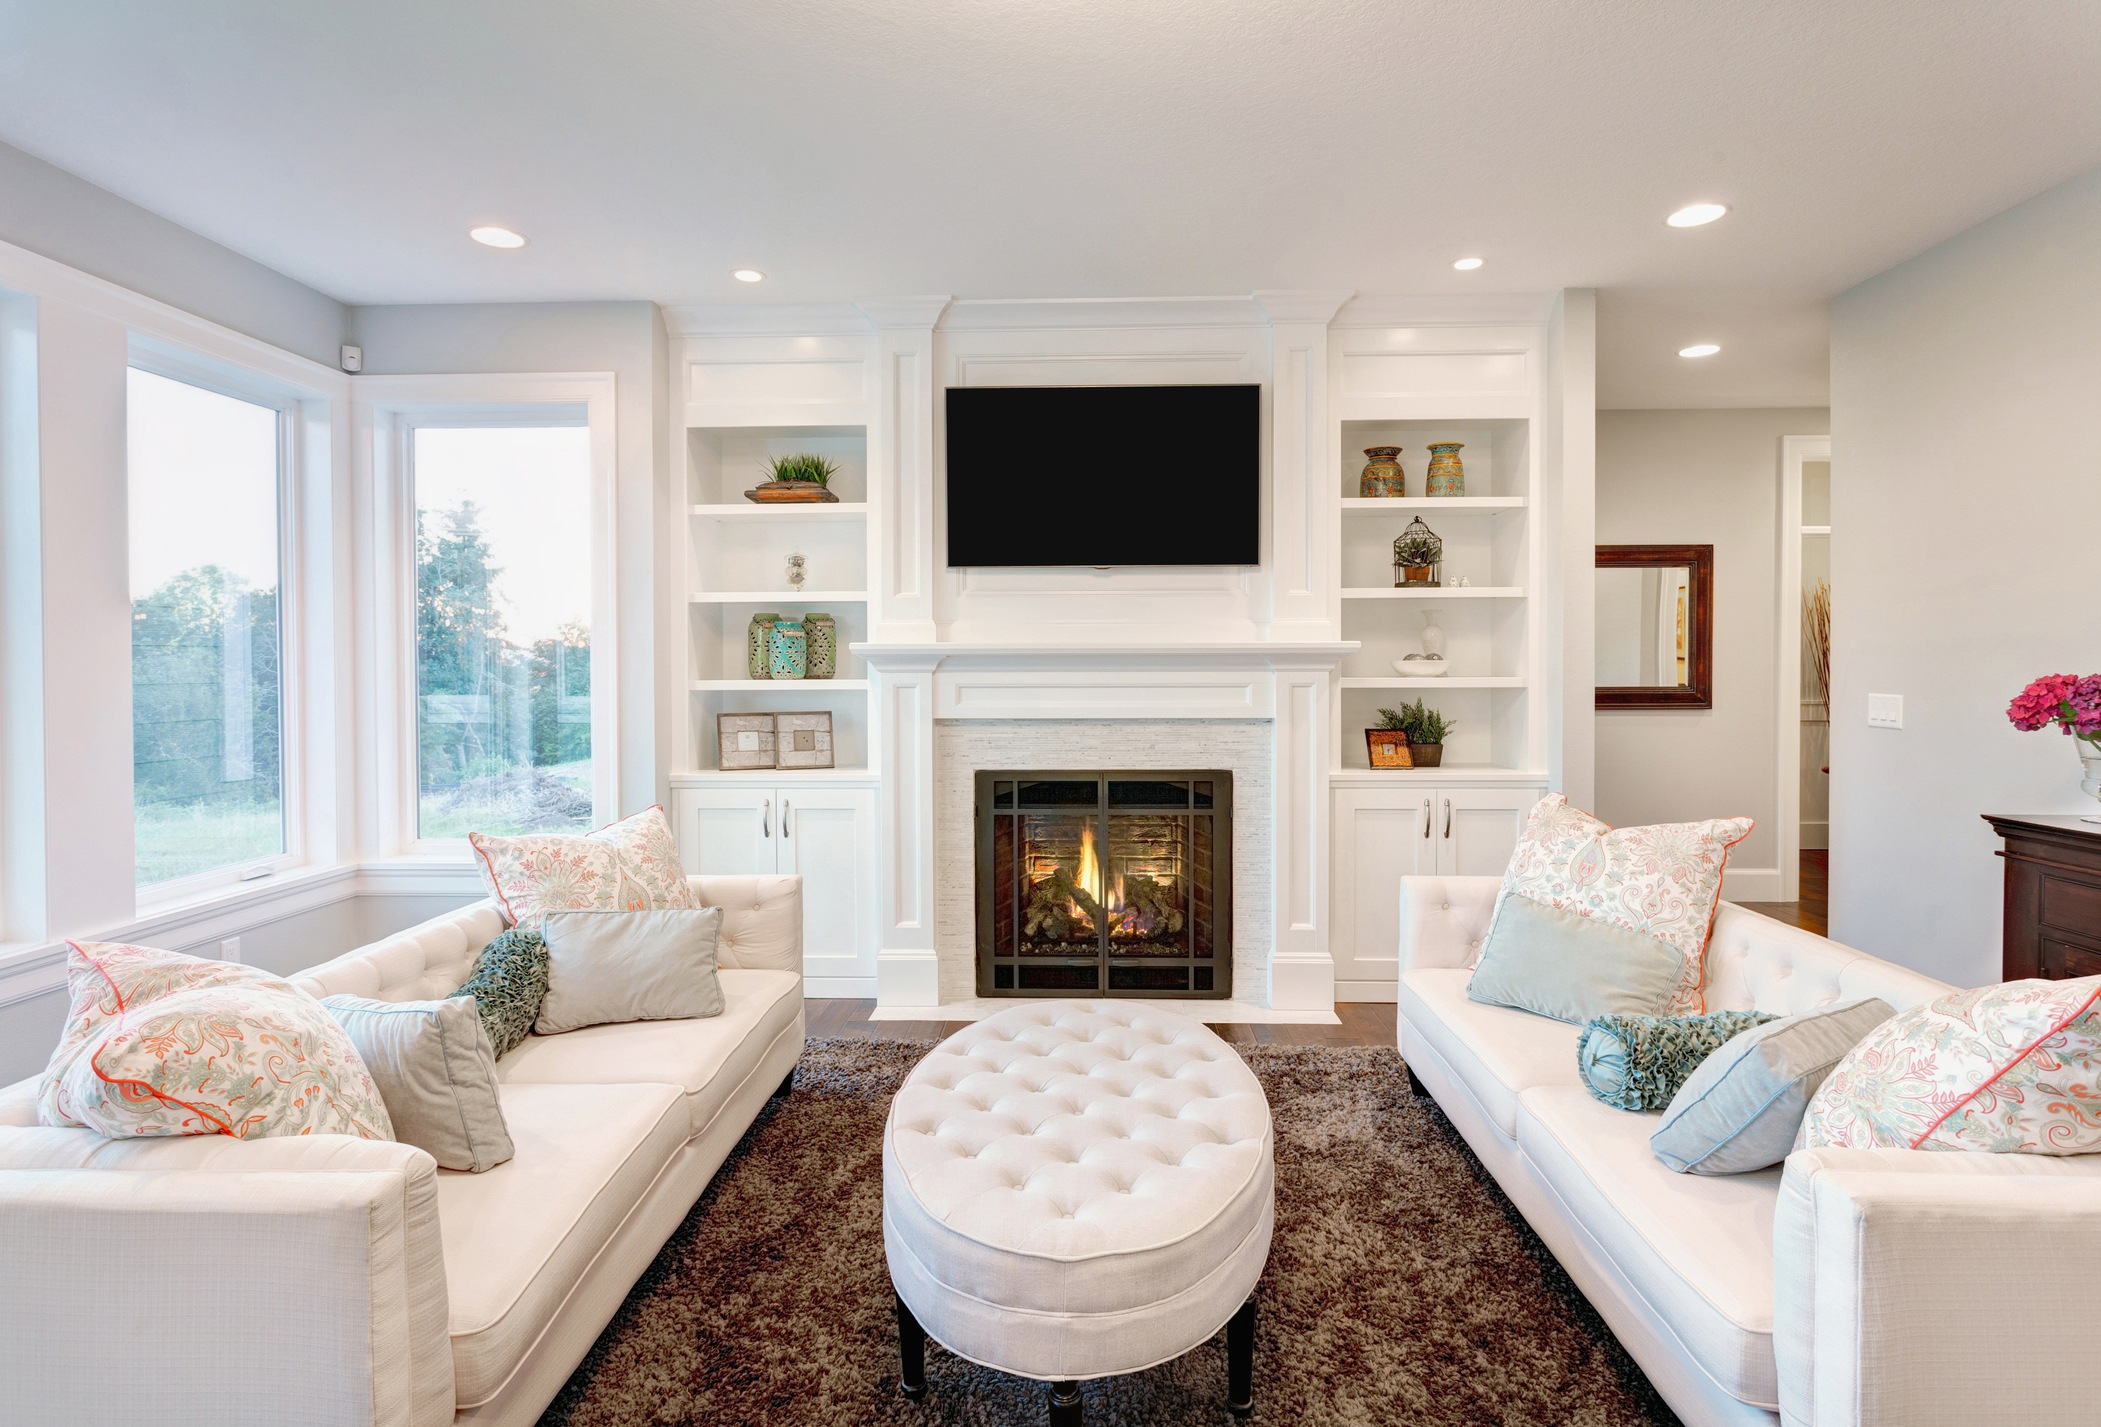 furnished living room in newly constructed home